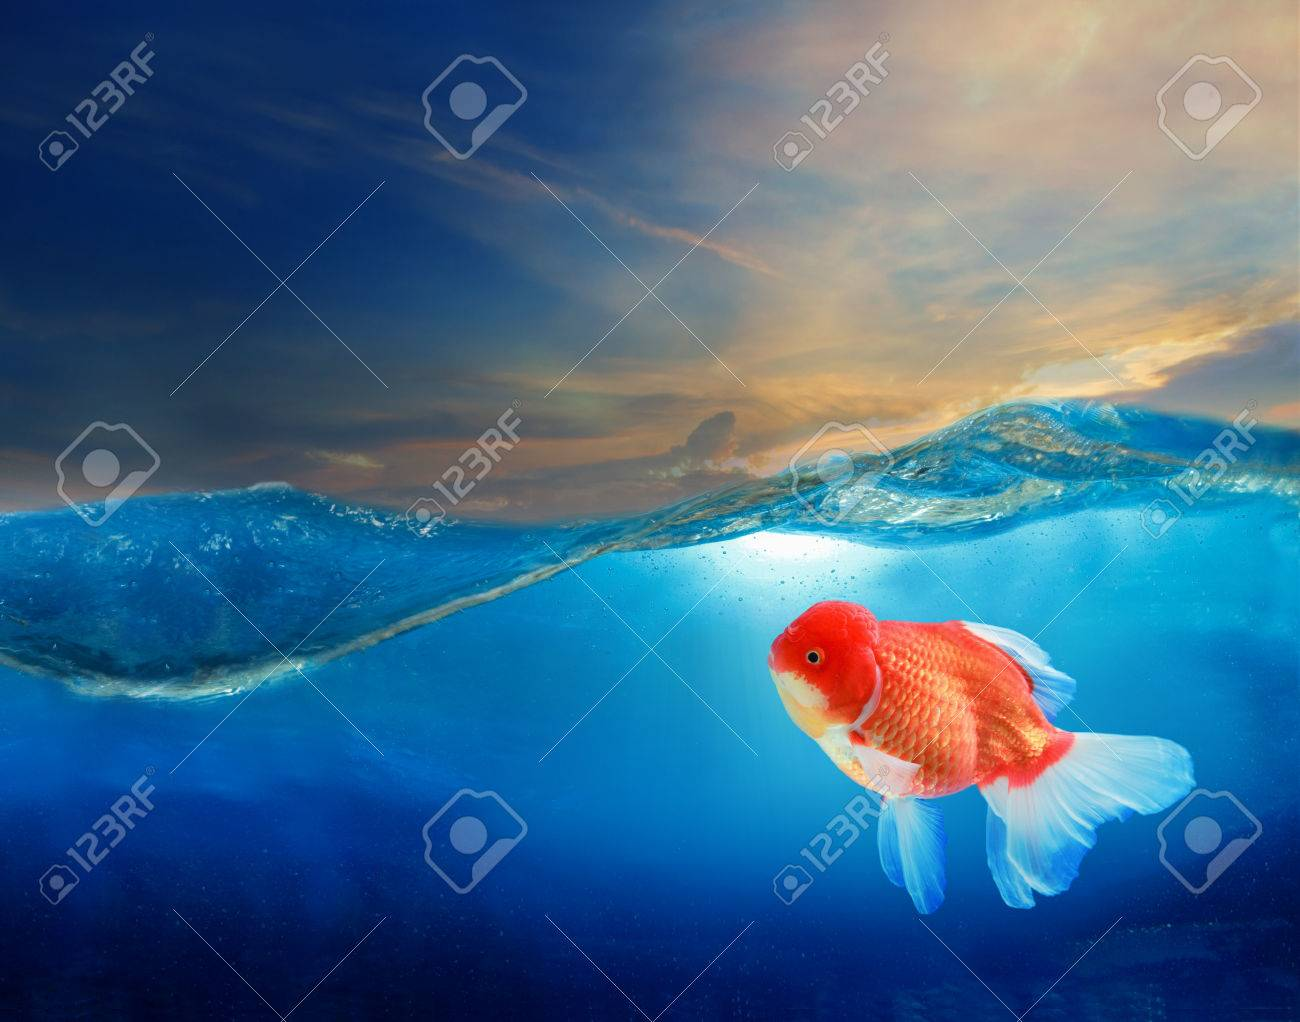 gold fish under blue water with beautiful dramatic sky Stock Photo - 23858828